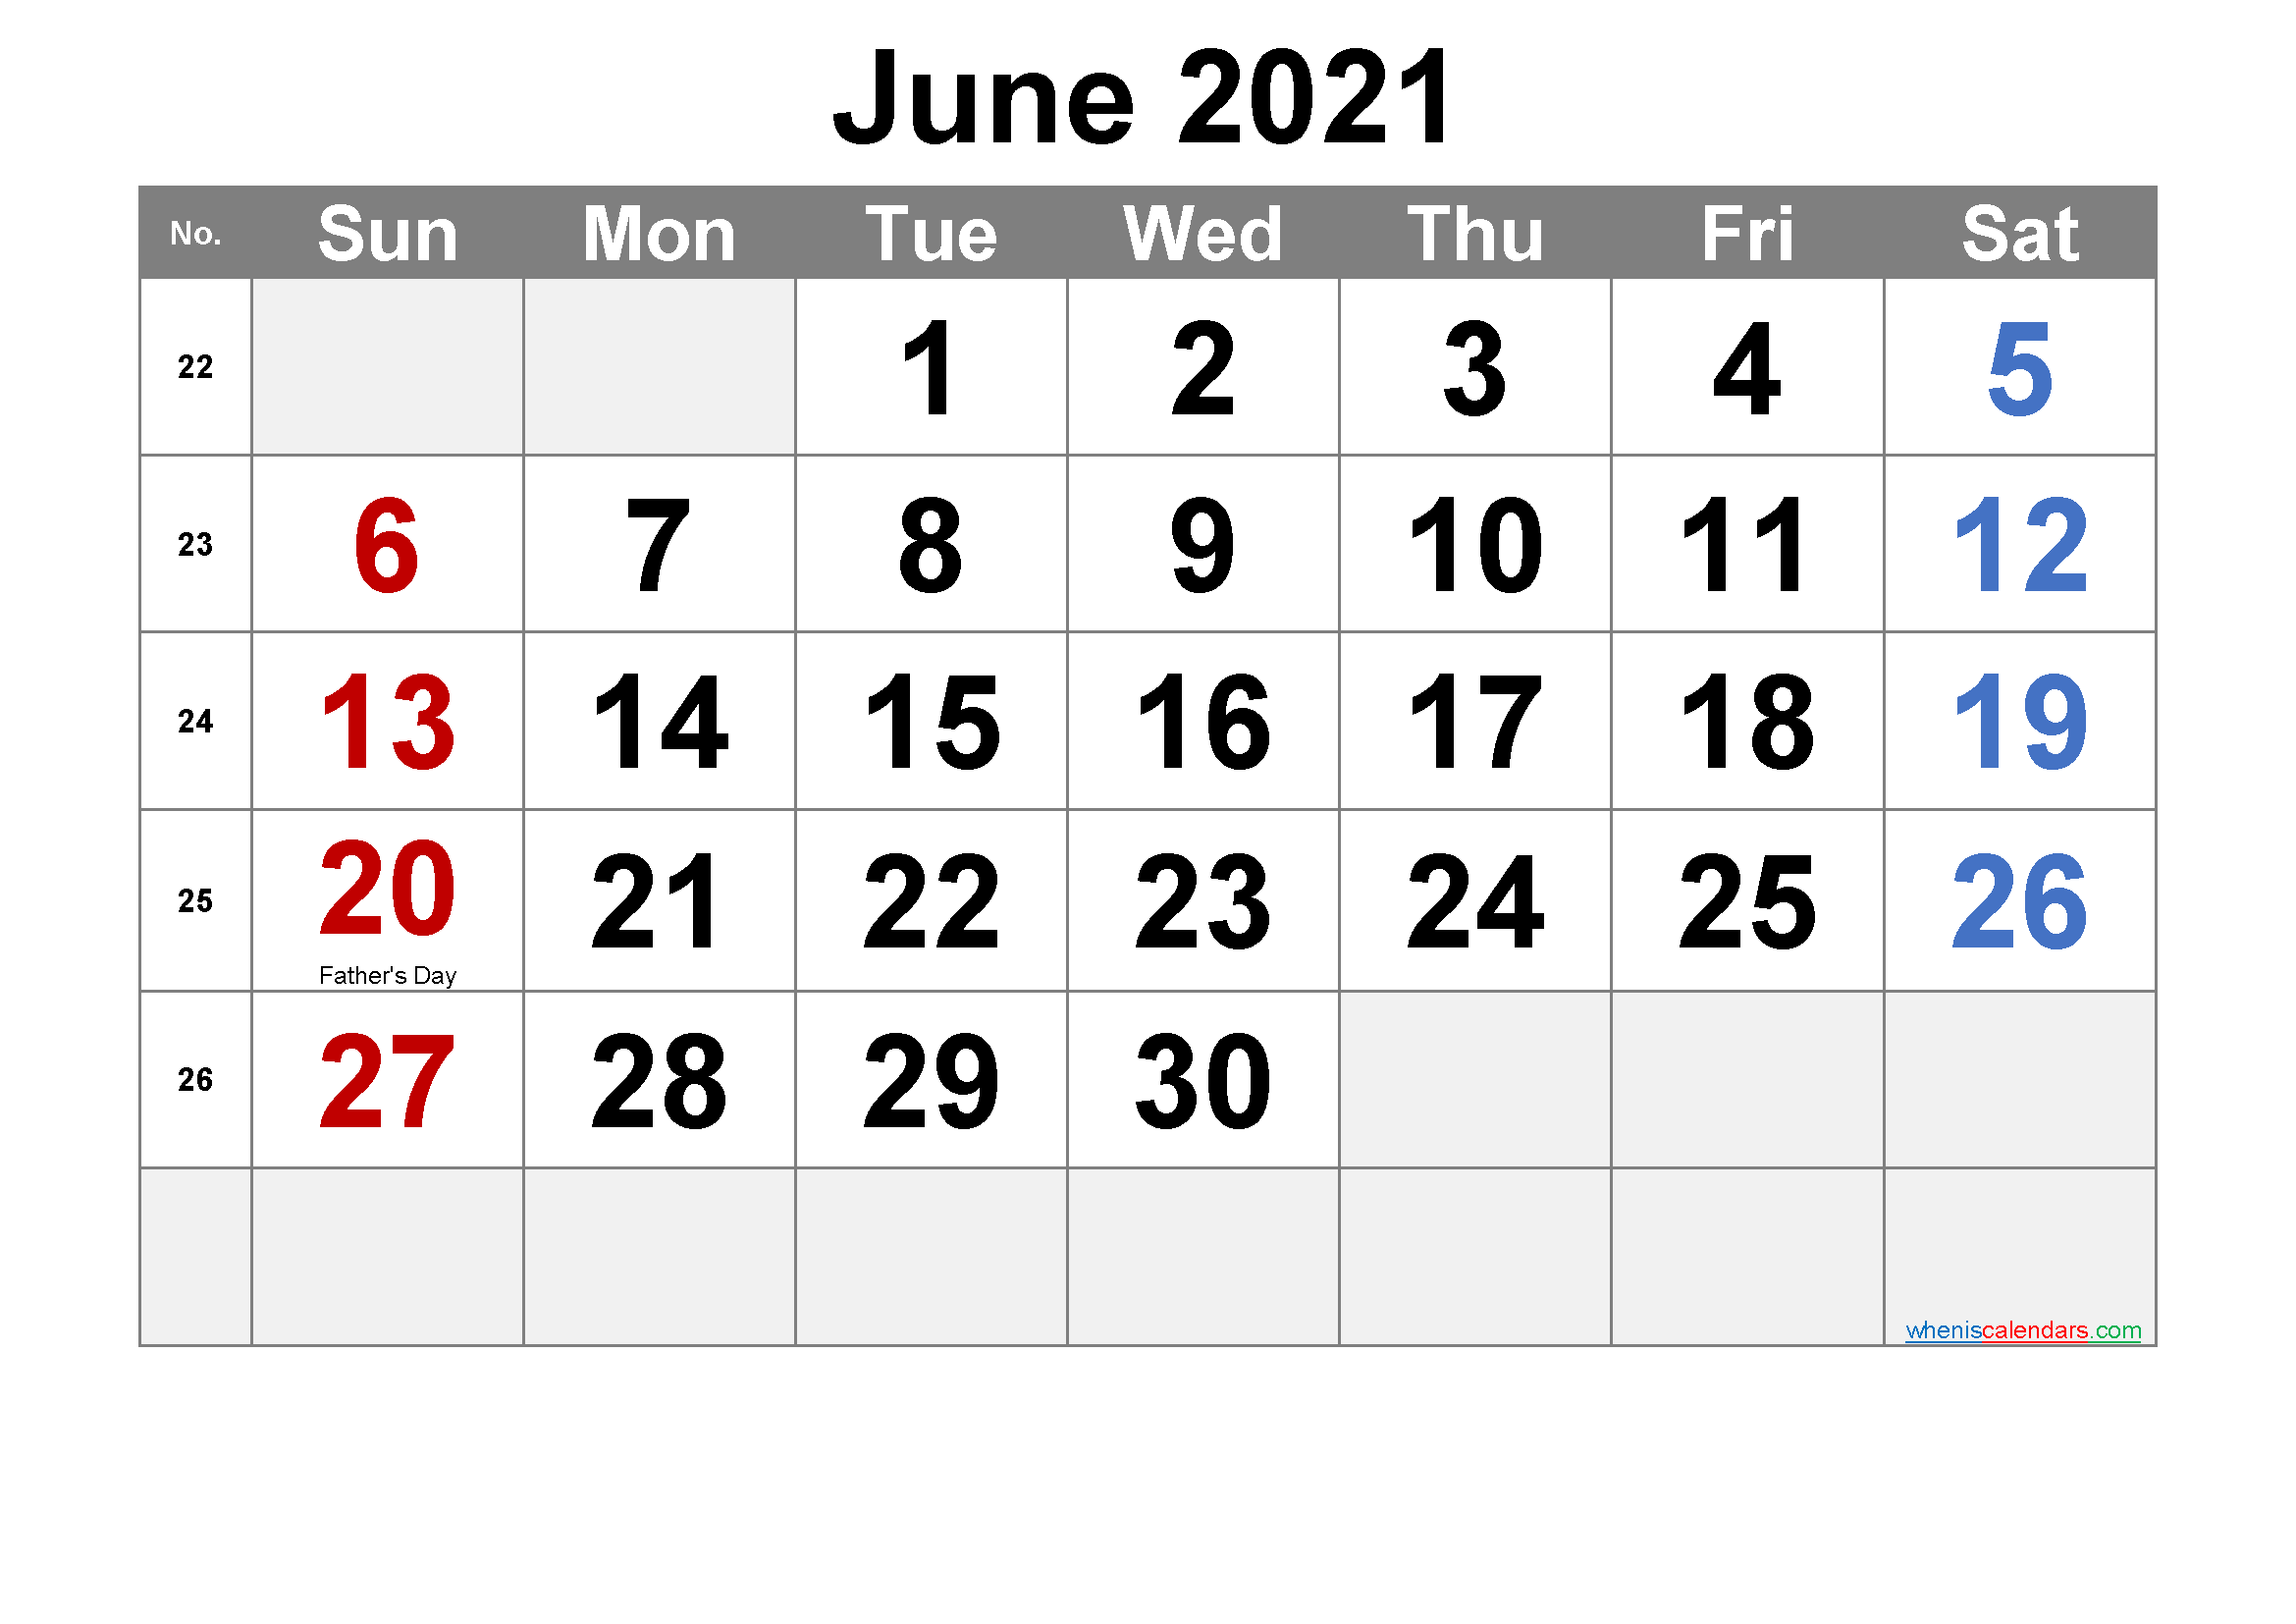 JUNE 2021 Printable Calendar with Holidays